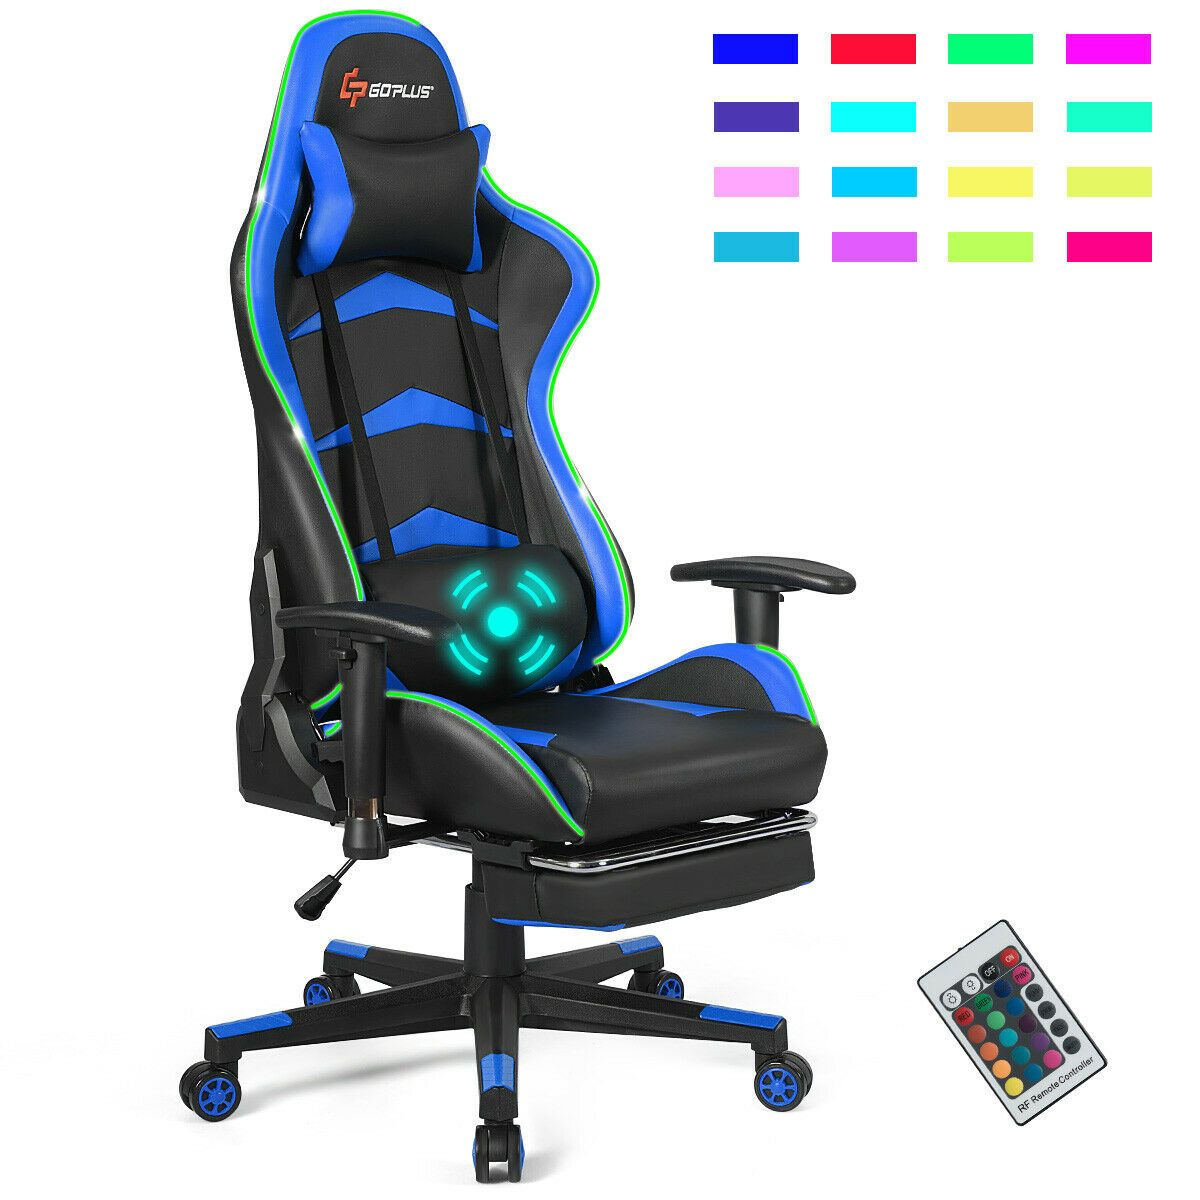 Massage Led Gaming Chair With Lumbar Support Footrest Blue In 2020 Gaming Chair Gamer Chair Game Room Chairs